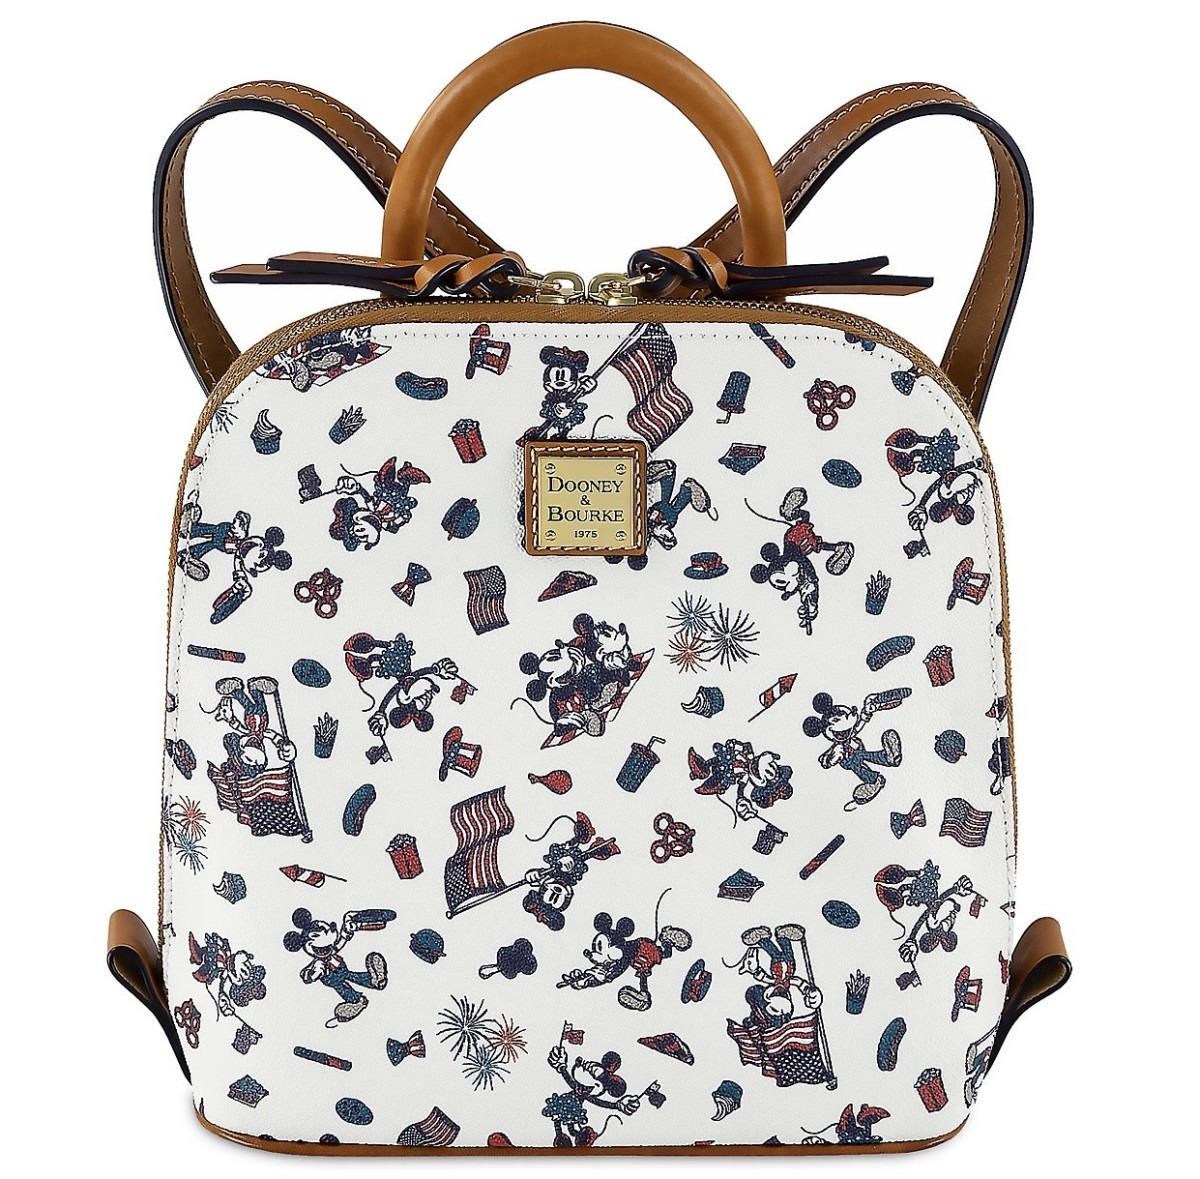 New Disney Americana Merchandise Now on shopDisney 1